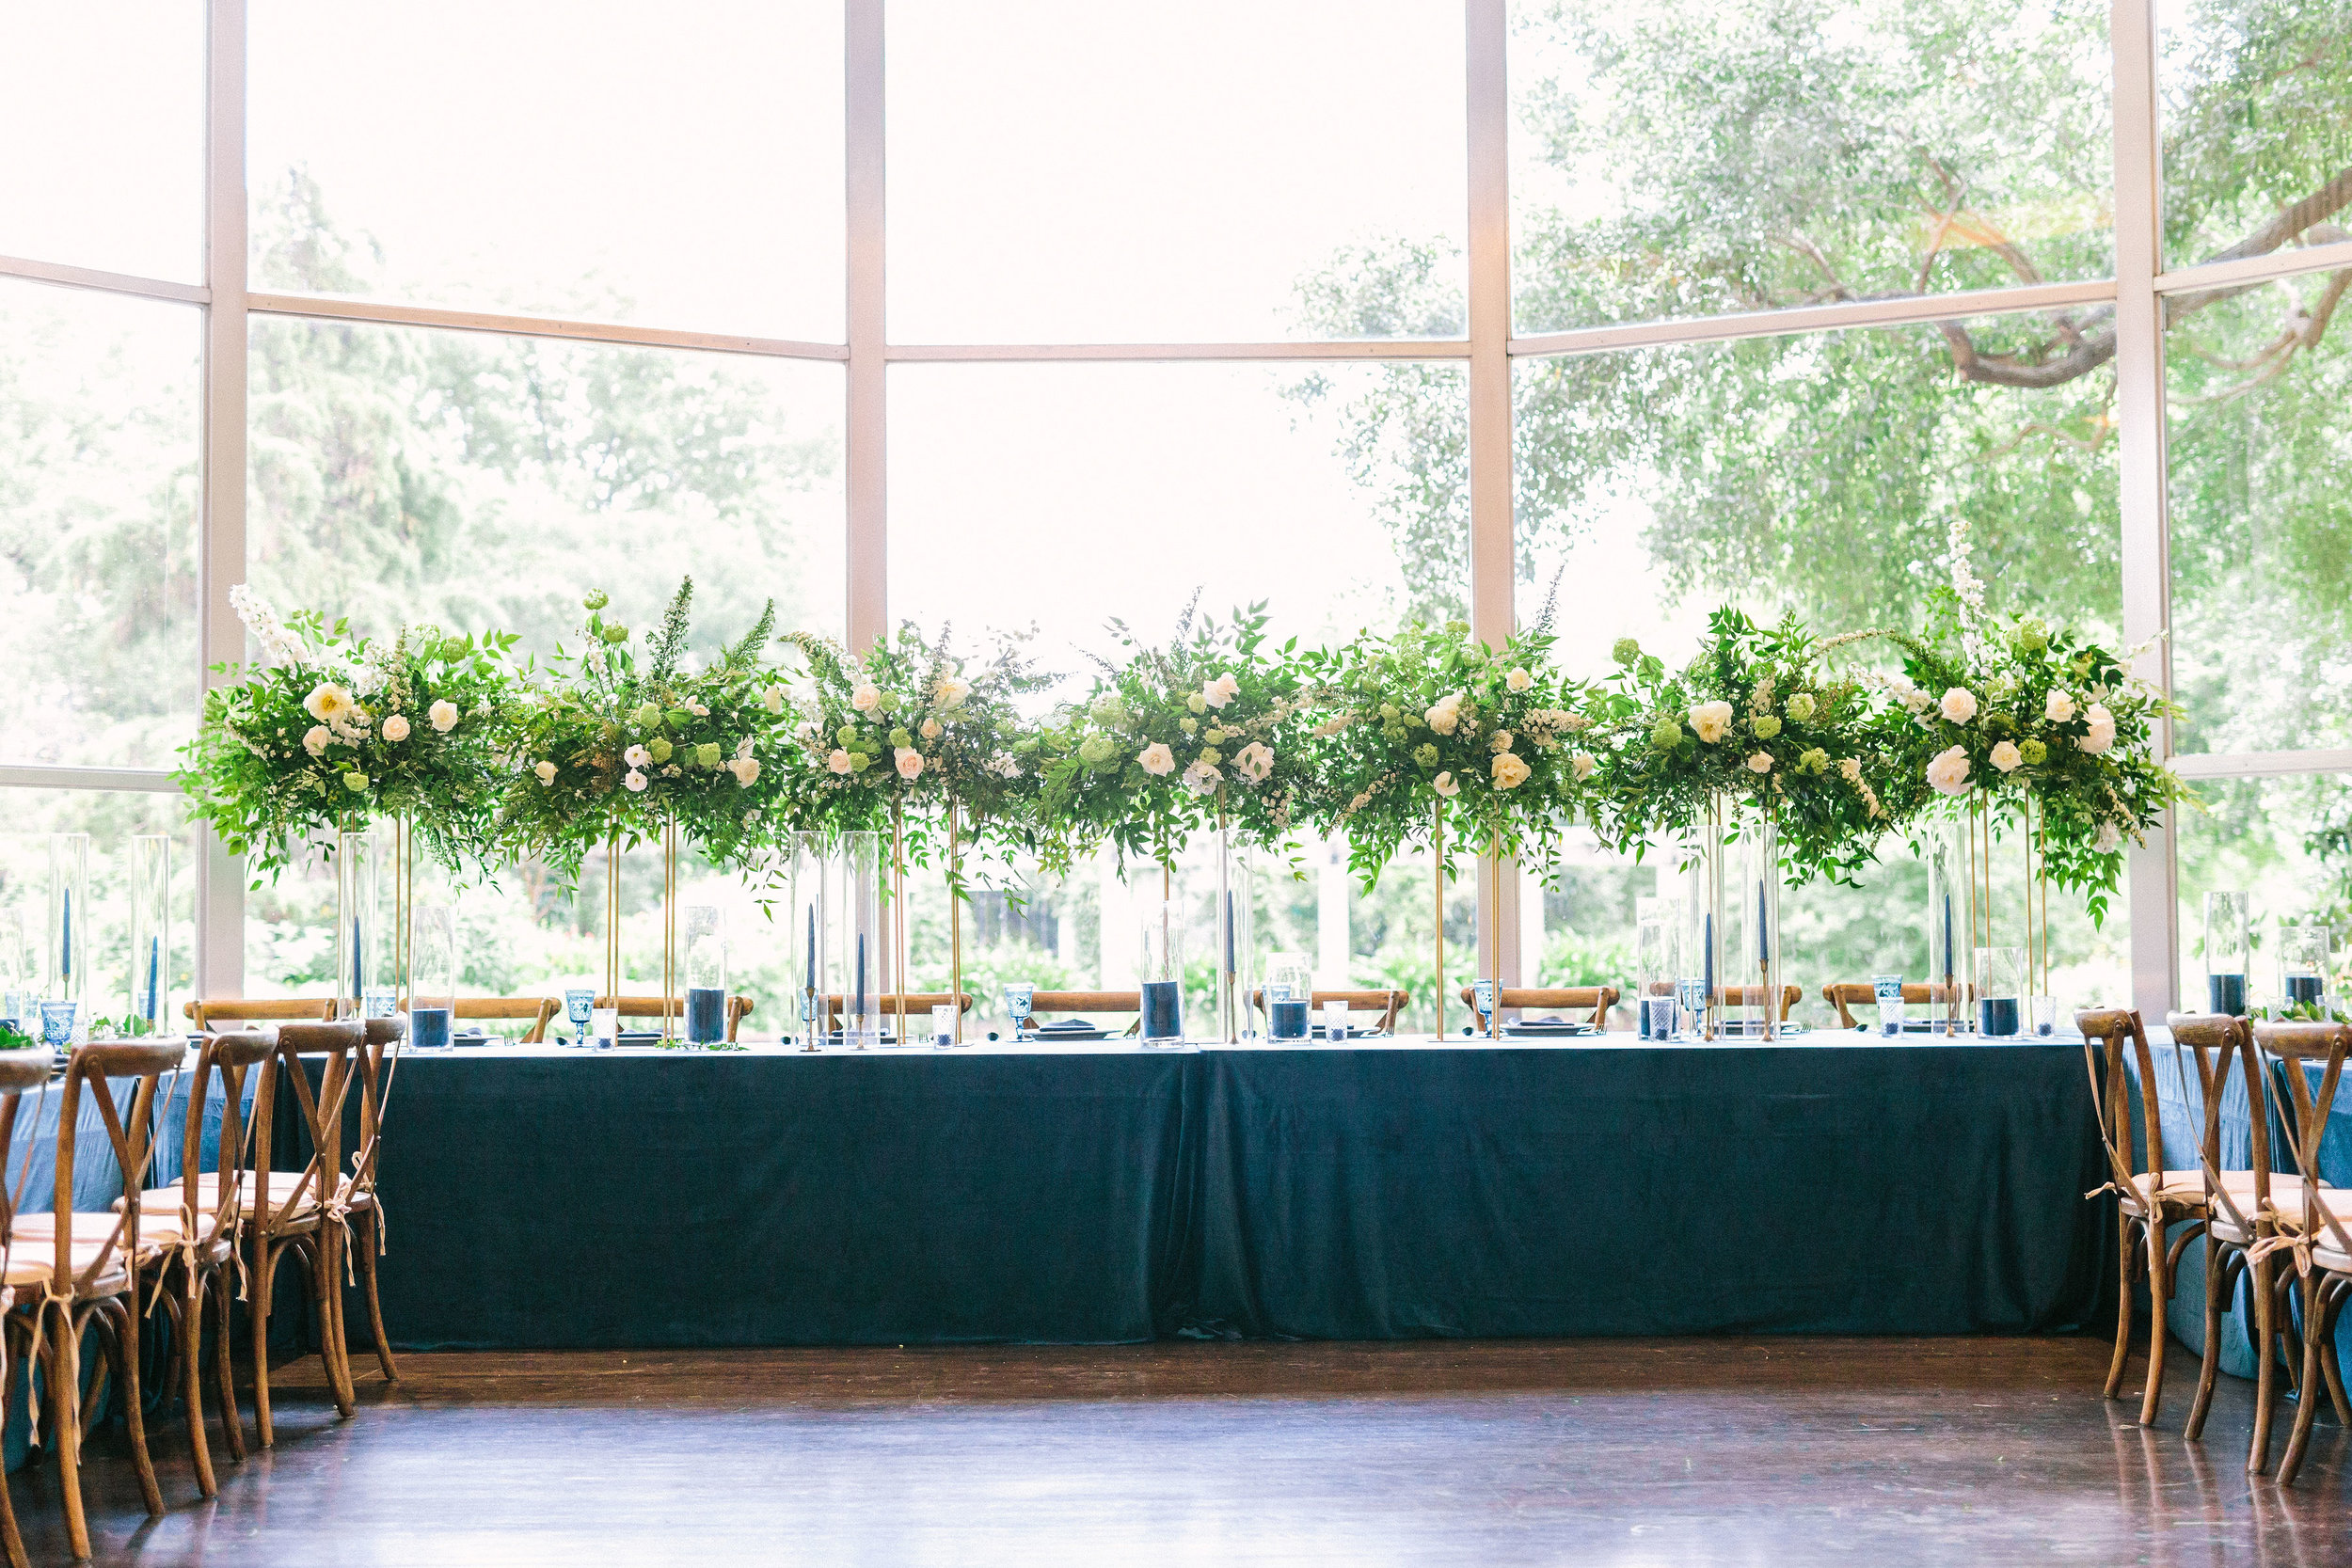 Erin-and-Jimmy-Reception-Space-Texas-Discovery-Gardens-Ivory-and-Vine.jpg